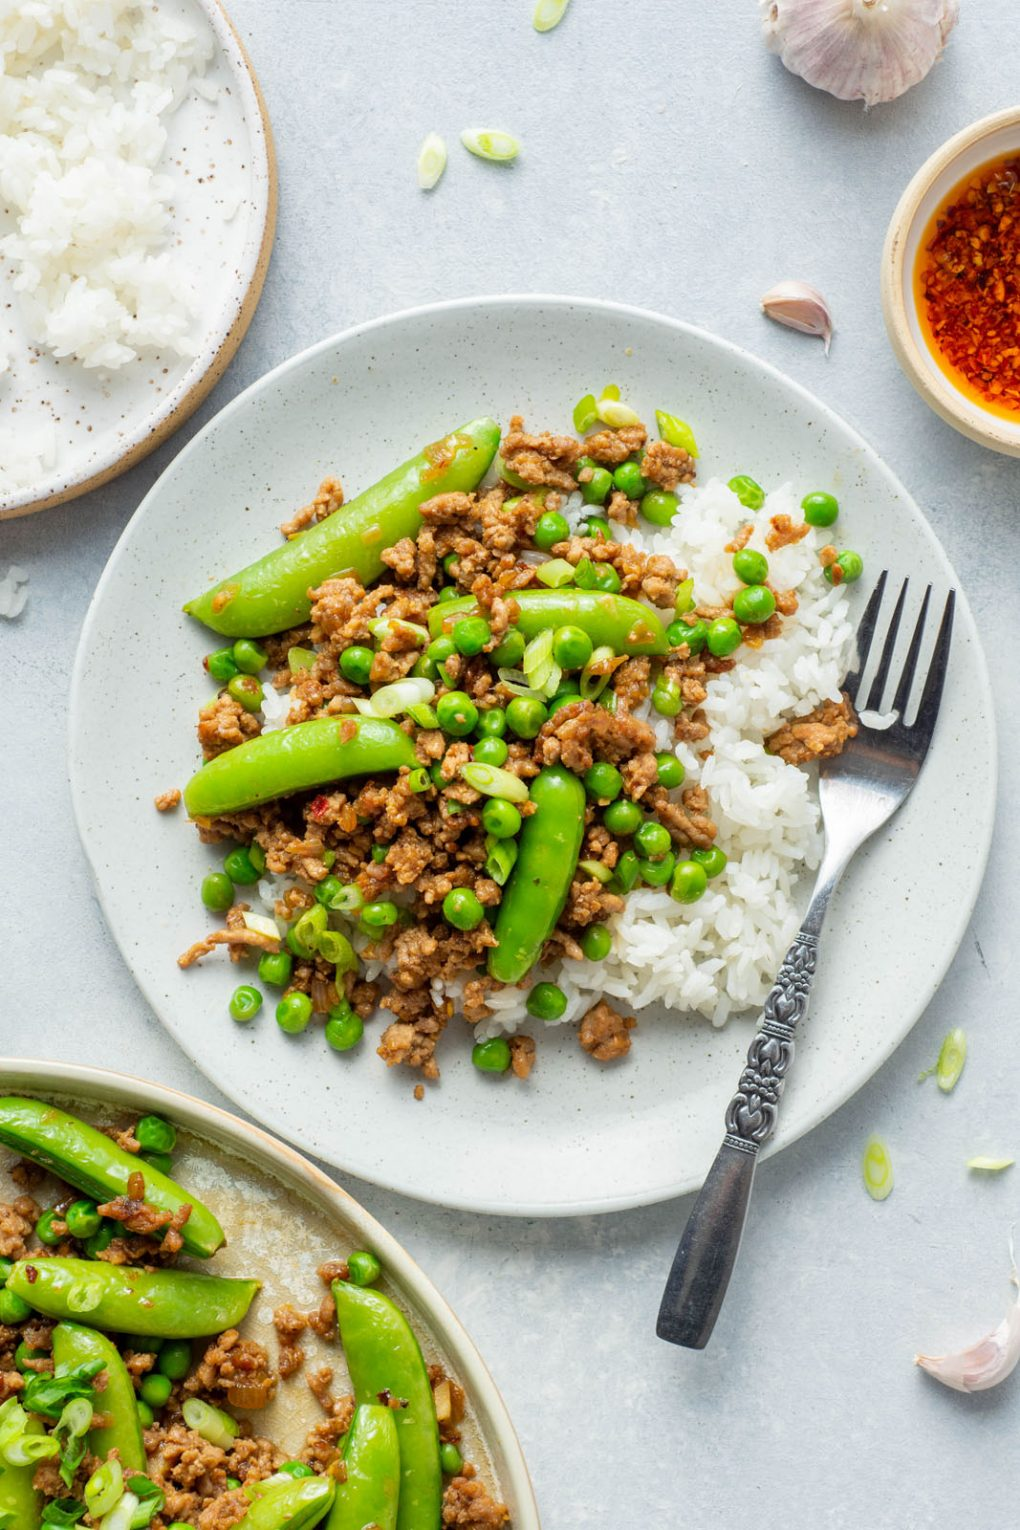 Up close overhead shot of a small white speckled plate with white rice, and a healthy portion of pork stir fry with green peas and sugar snap peas. A small decorative silver fork is on the plate, and it's on a light colored background next to a bowl of rice, and a small bowl of bright red chili oil.